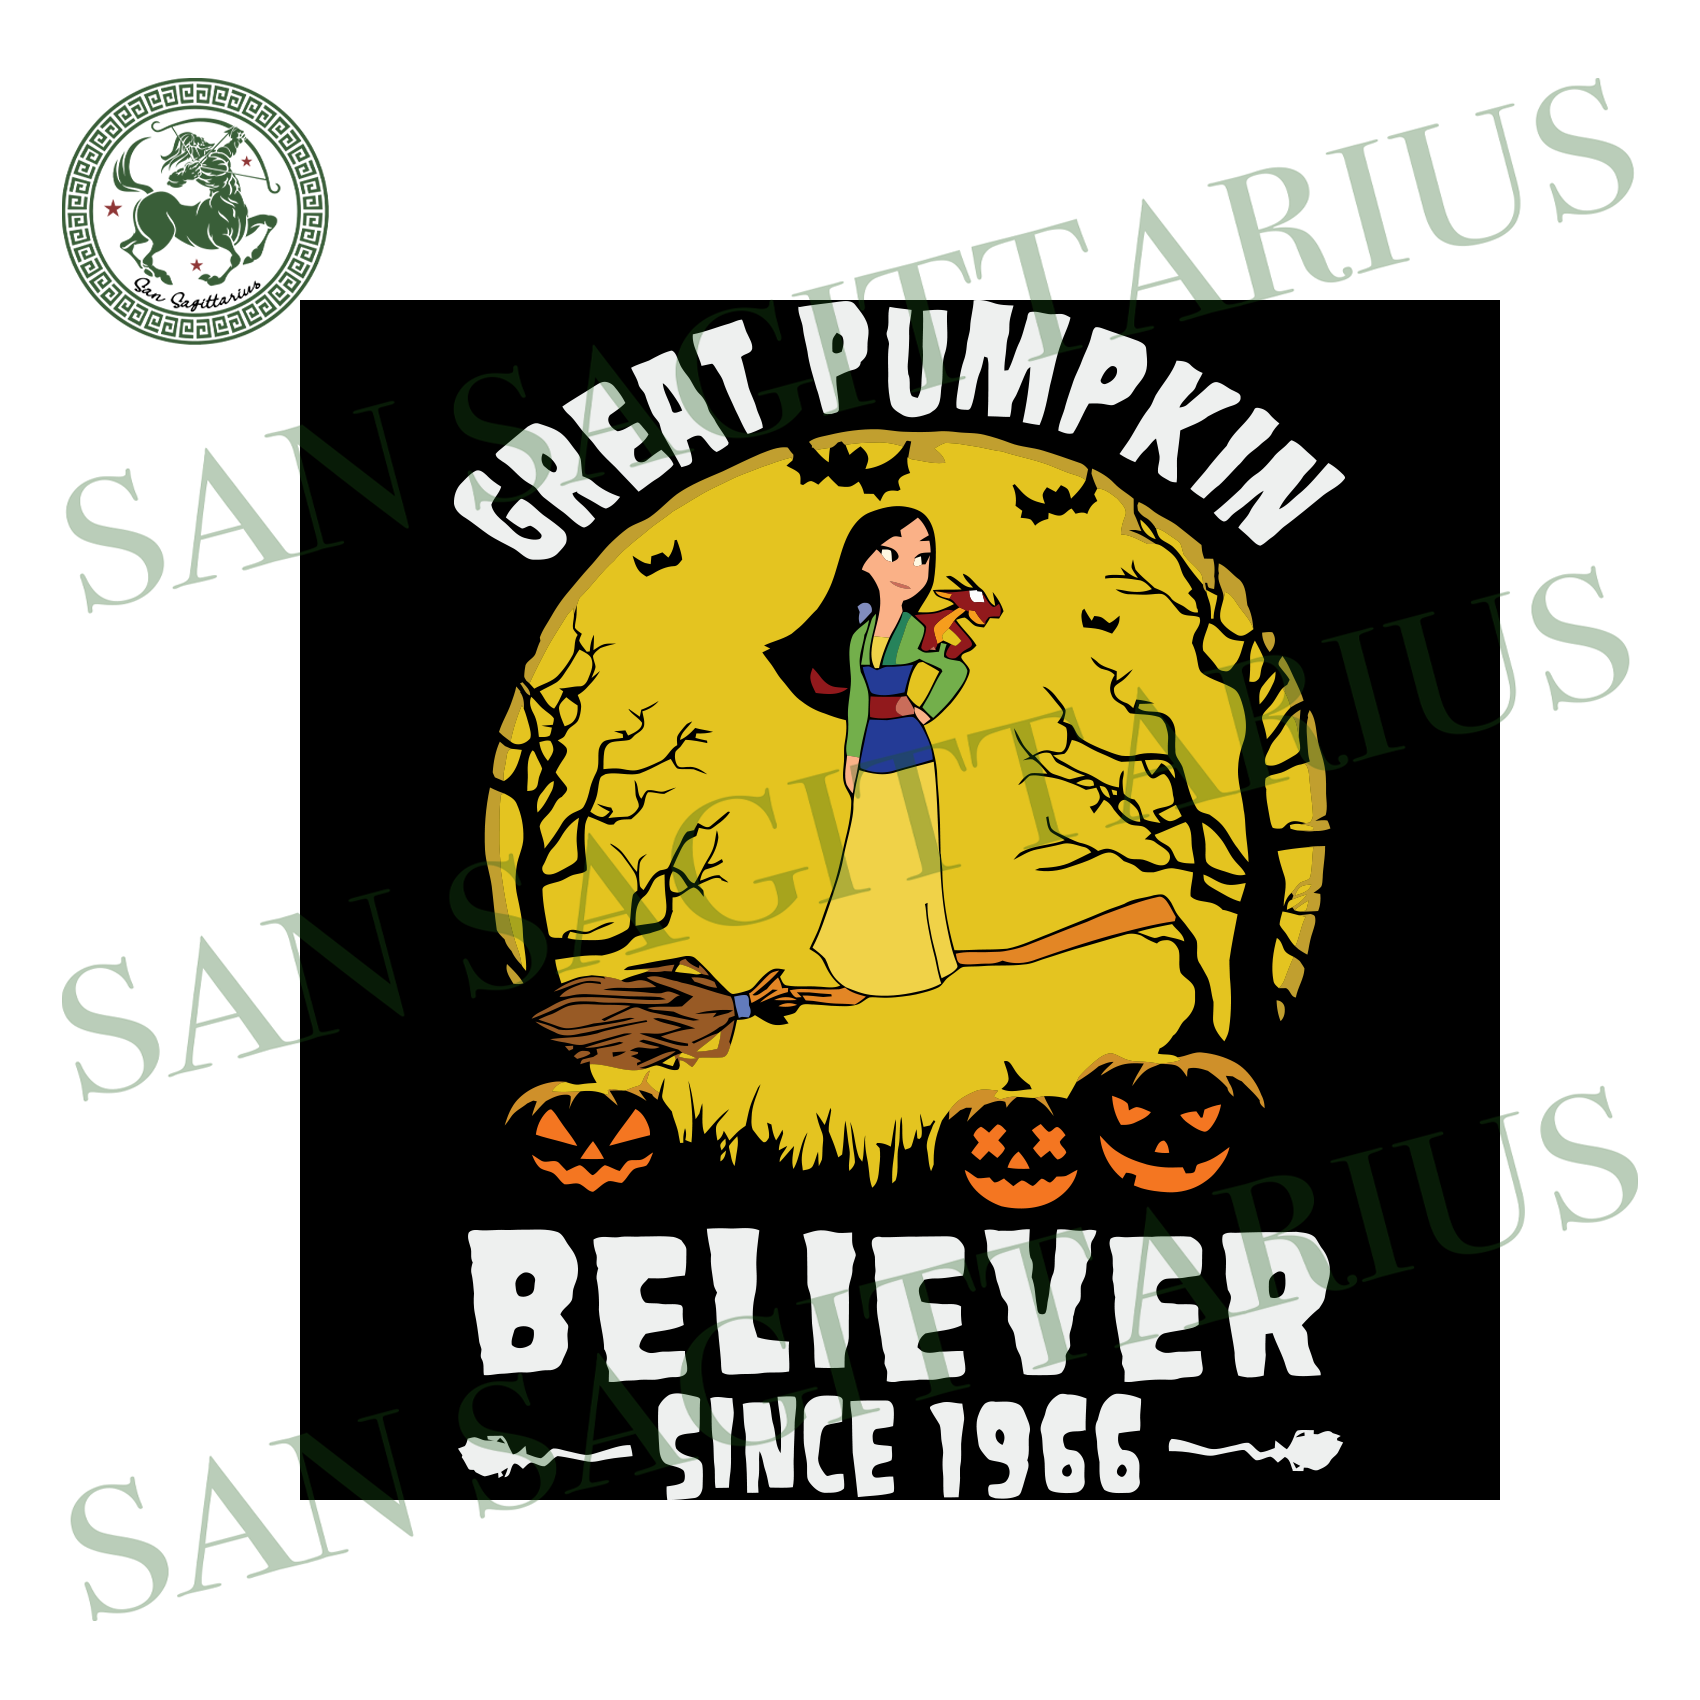 Chinese Princess Great Pumpkin Believer Since 1966, Halloween Svg, Happy Halloween, Pumpkin Svg, Disney Halloween, Nightmare Svg, Chinese Princess Svg, Cute Chinese Princess,Disney Svg, Disne